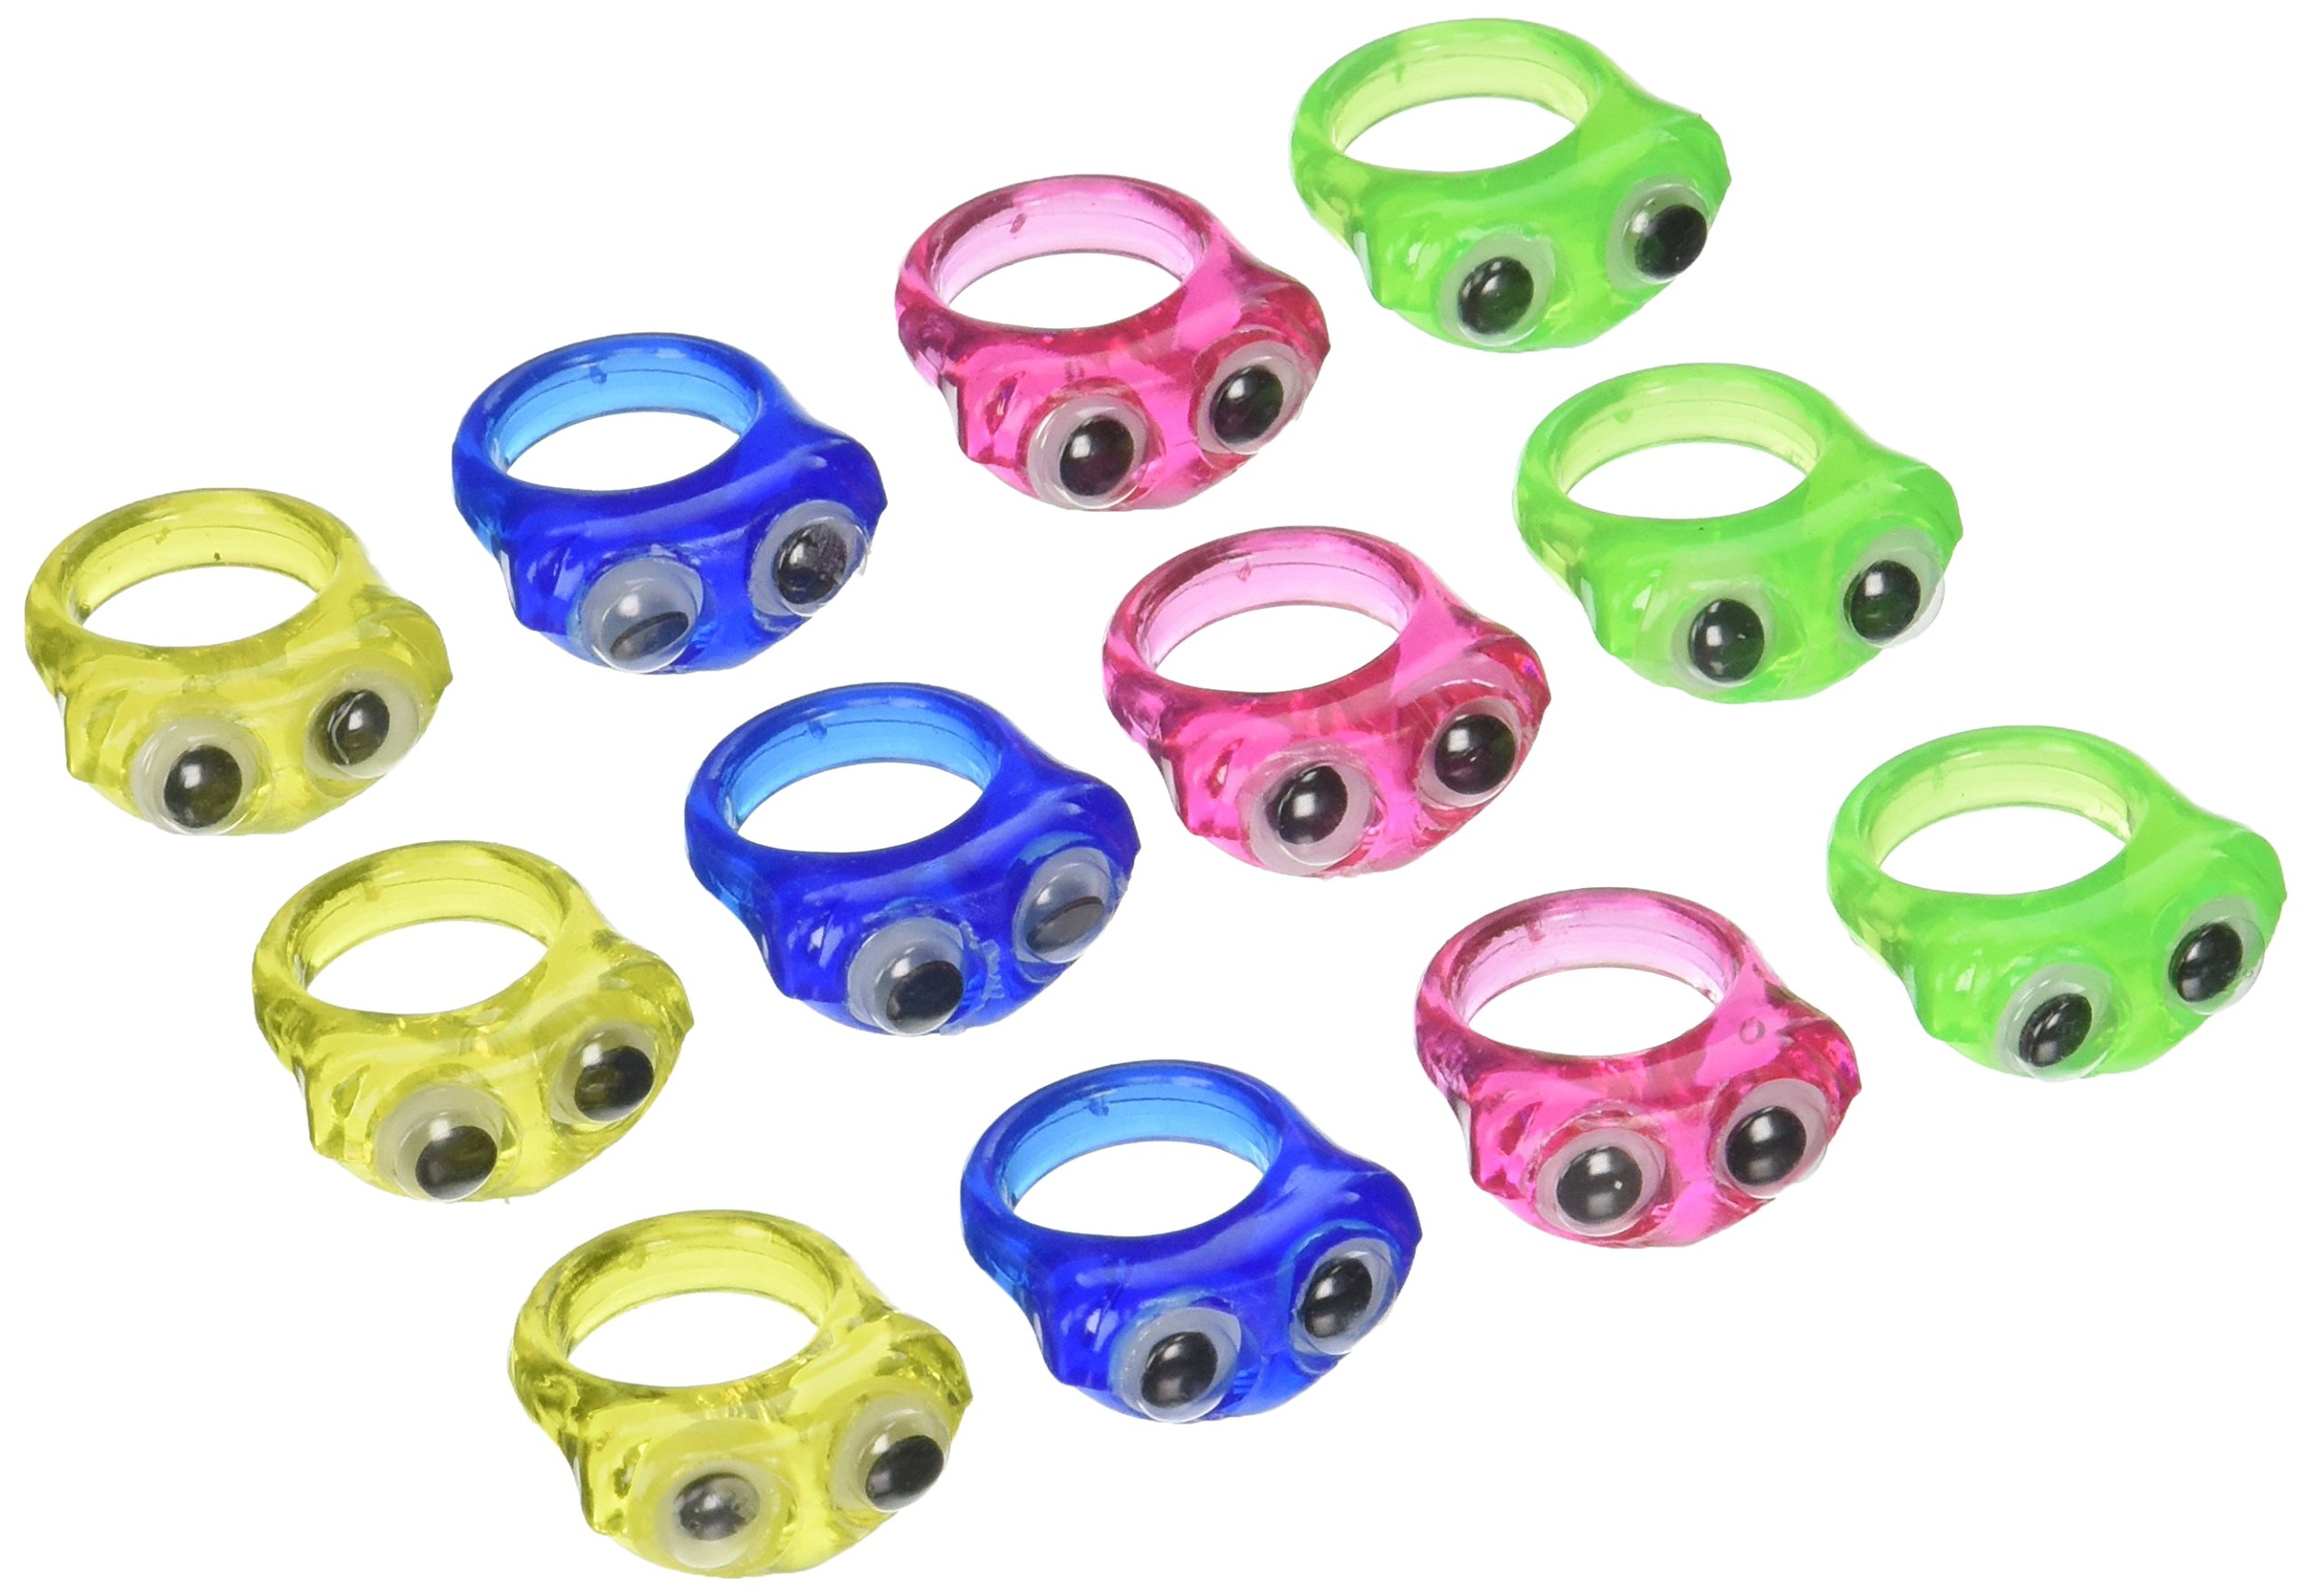 Wiggle Eye Rings - Novelty Jewelry & Googly Eye Rings / Bulk 36 Count